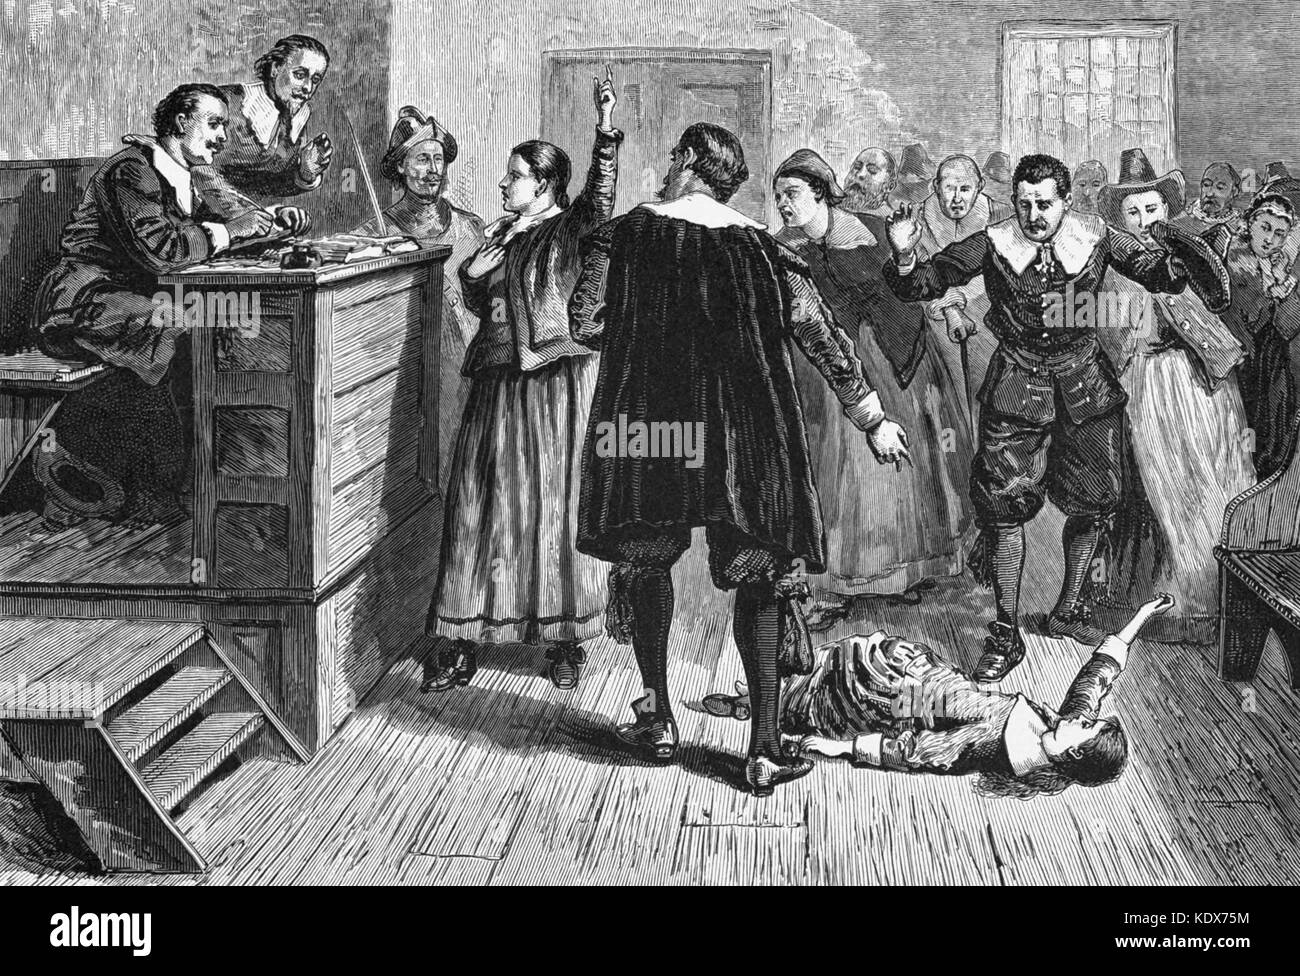 the injustice of the salem witch trials in 1692 Cold case files: solving the mystery of the salem witch the key events of the salem witch trials: • in 1692 town officials of salem, ma for the injustice.